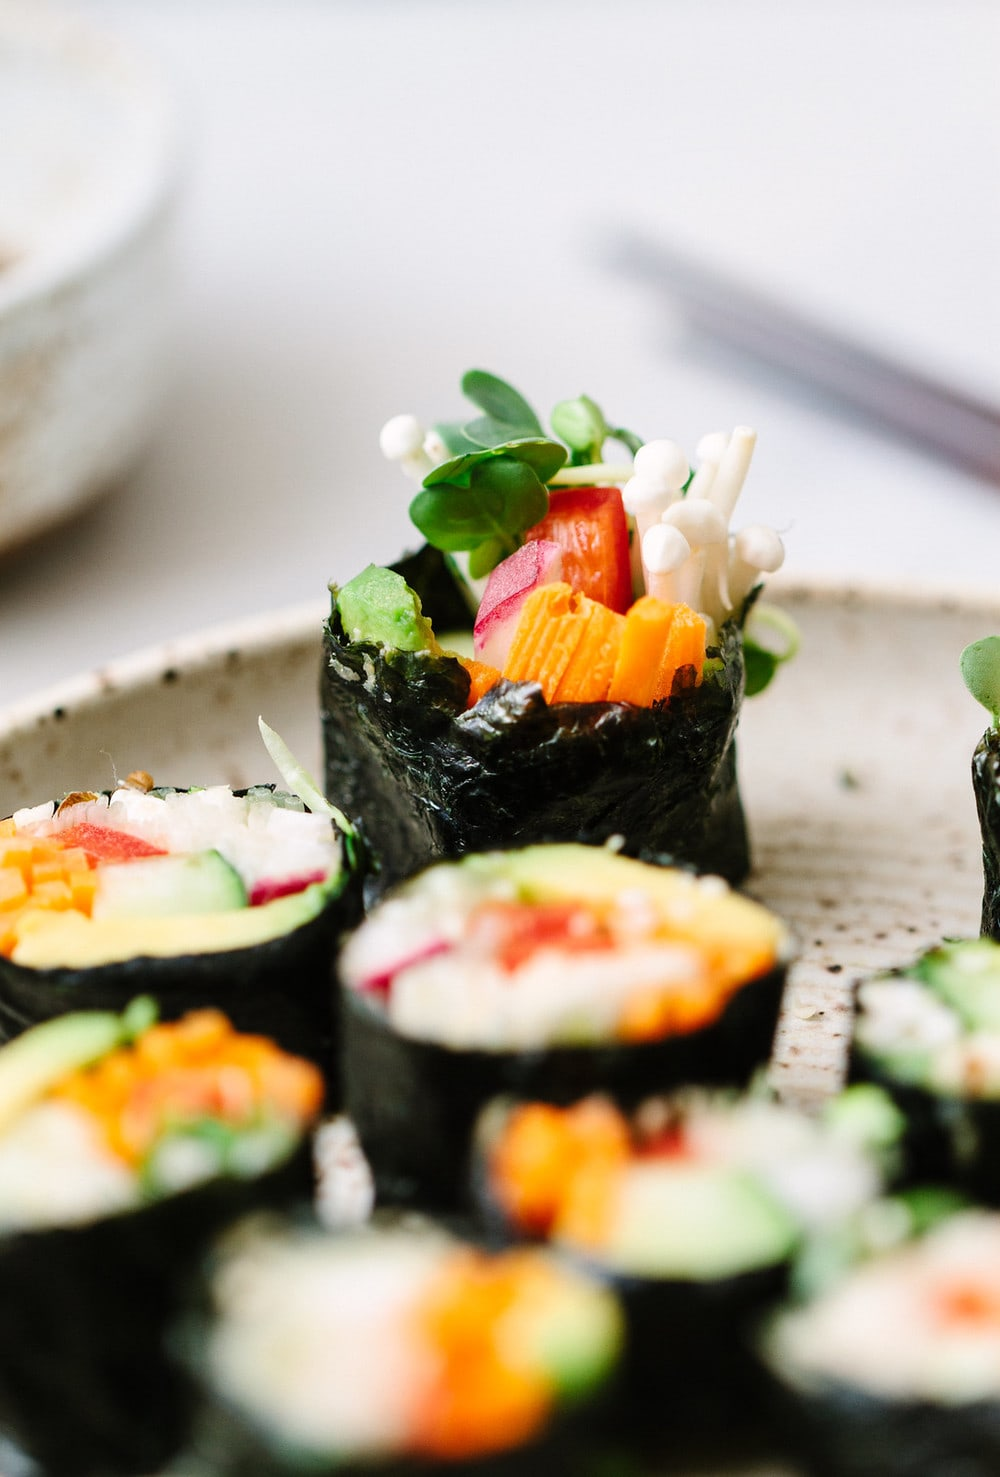 side angle view of sliced vegan sushi roll on a plate